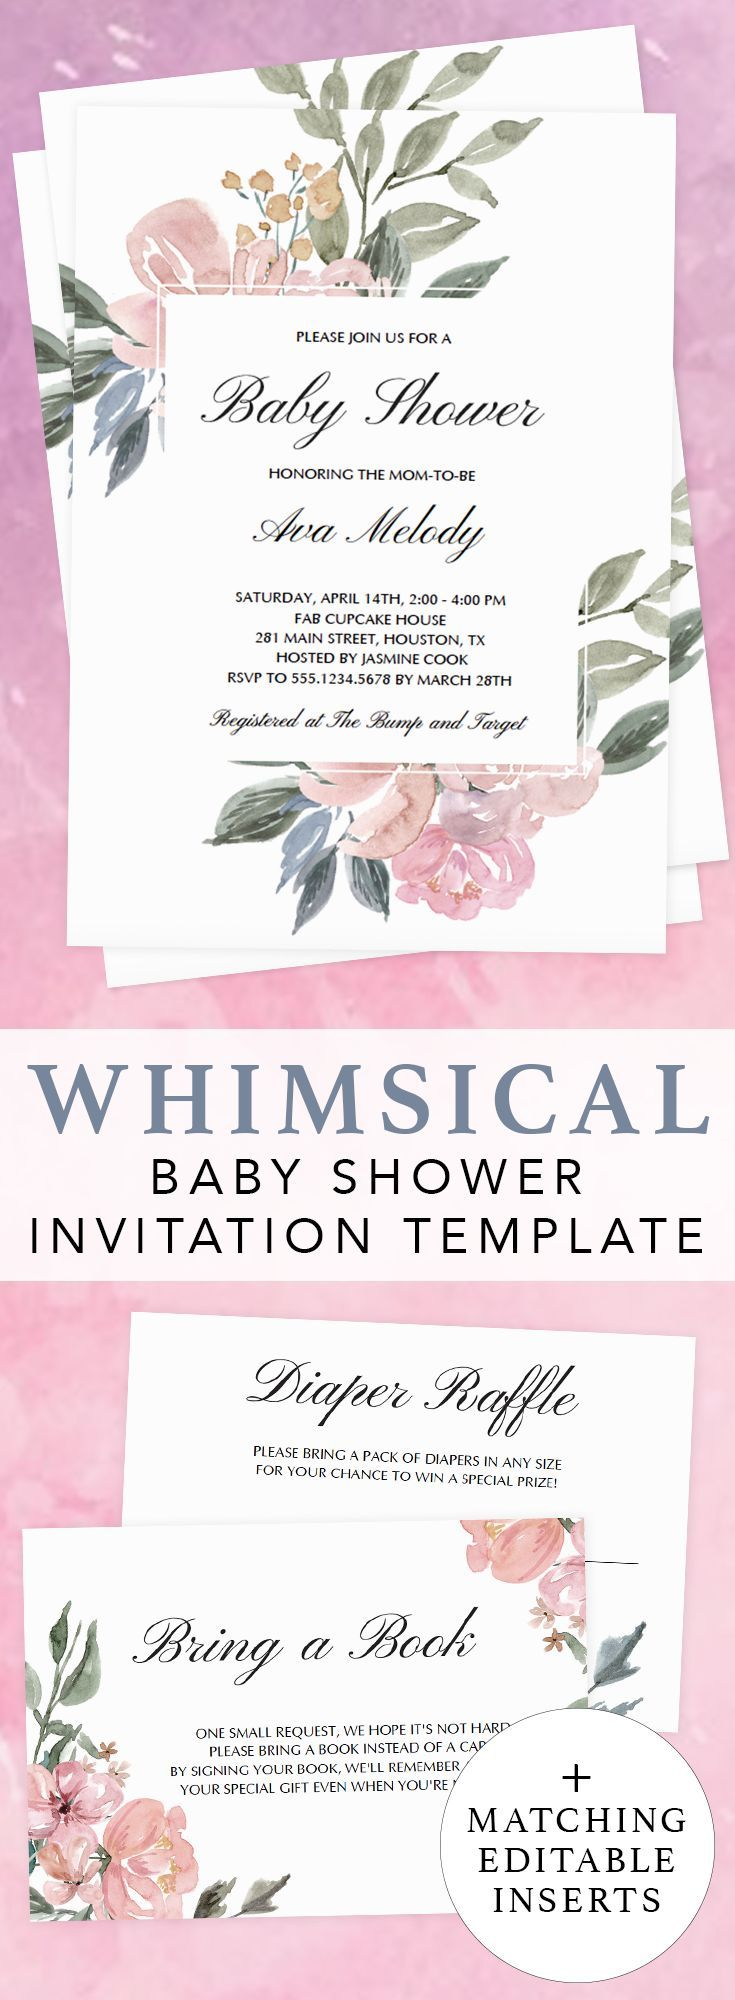 Whimsical baby shower ideas by LittleSizzle. Whimsical invitation template for girl baby shower. Click through to create your own printable whimsical floral baby shower invitations for a gender neutral shower. Floral baby shower invitation and matching editable bring a book request card and printable diaper raffle ticket. #babyshowerideas #babyshowerinvitations #template #DIY #whimsical #girl #genderneutral #floral